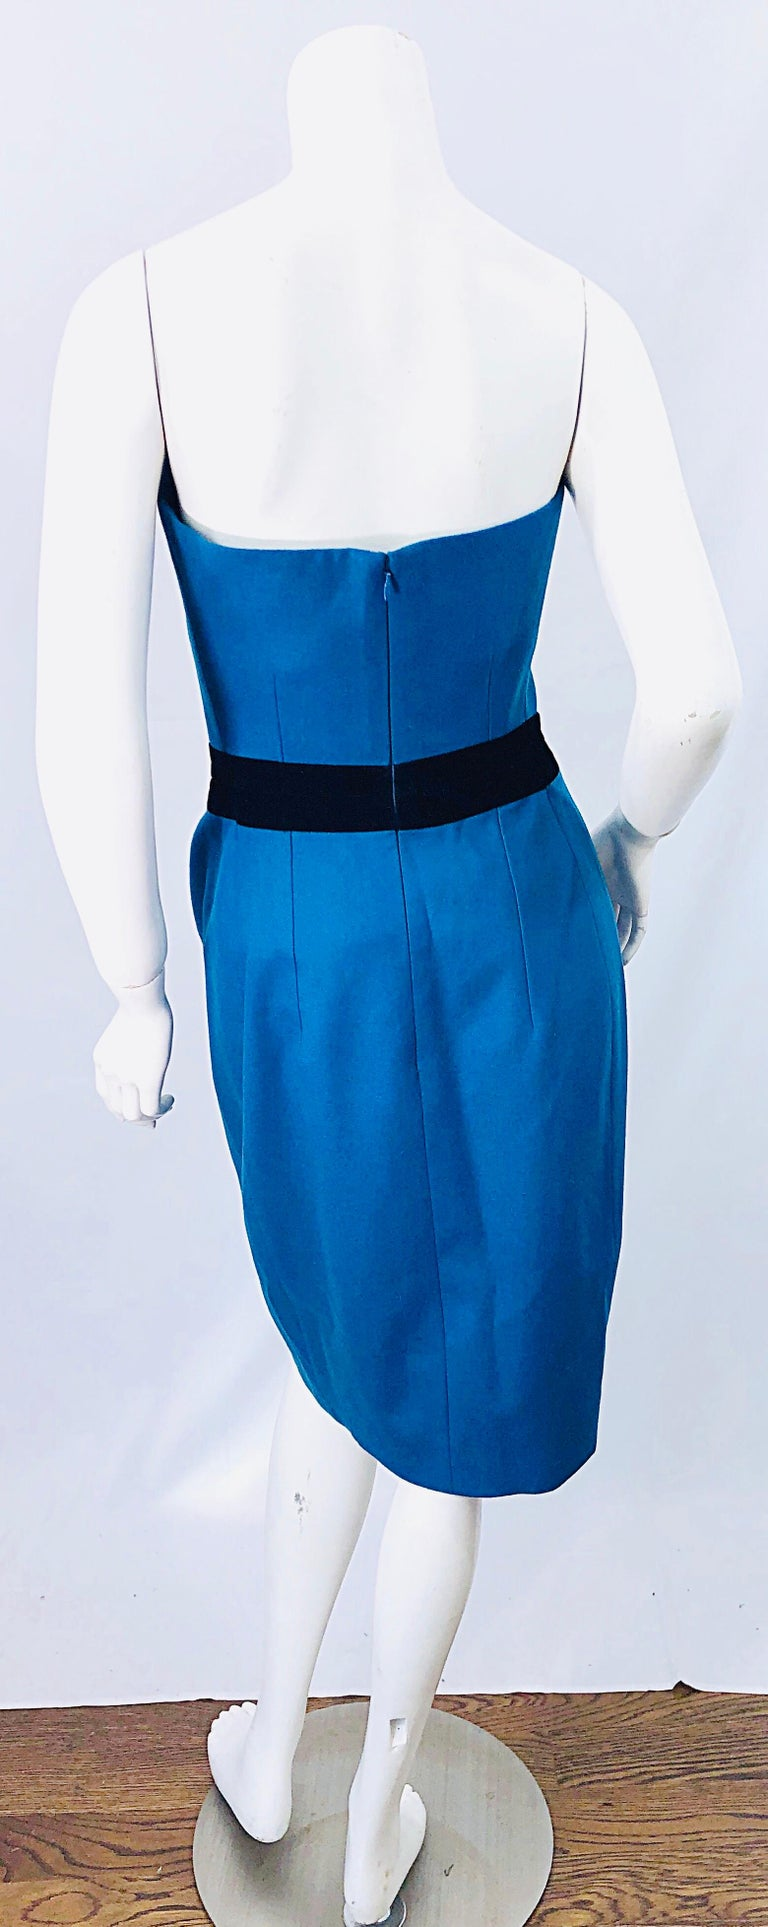 Ad Campaign Yves Saint Laurent YSL Fall / Winter 2008 Turquoise Blue Dress For Sale 2